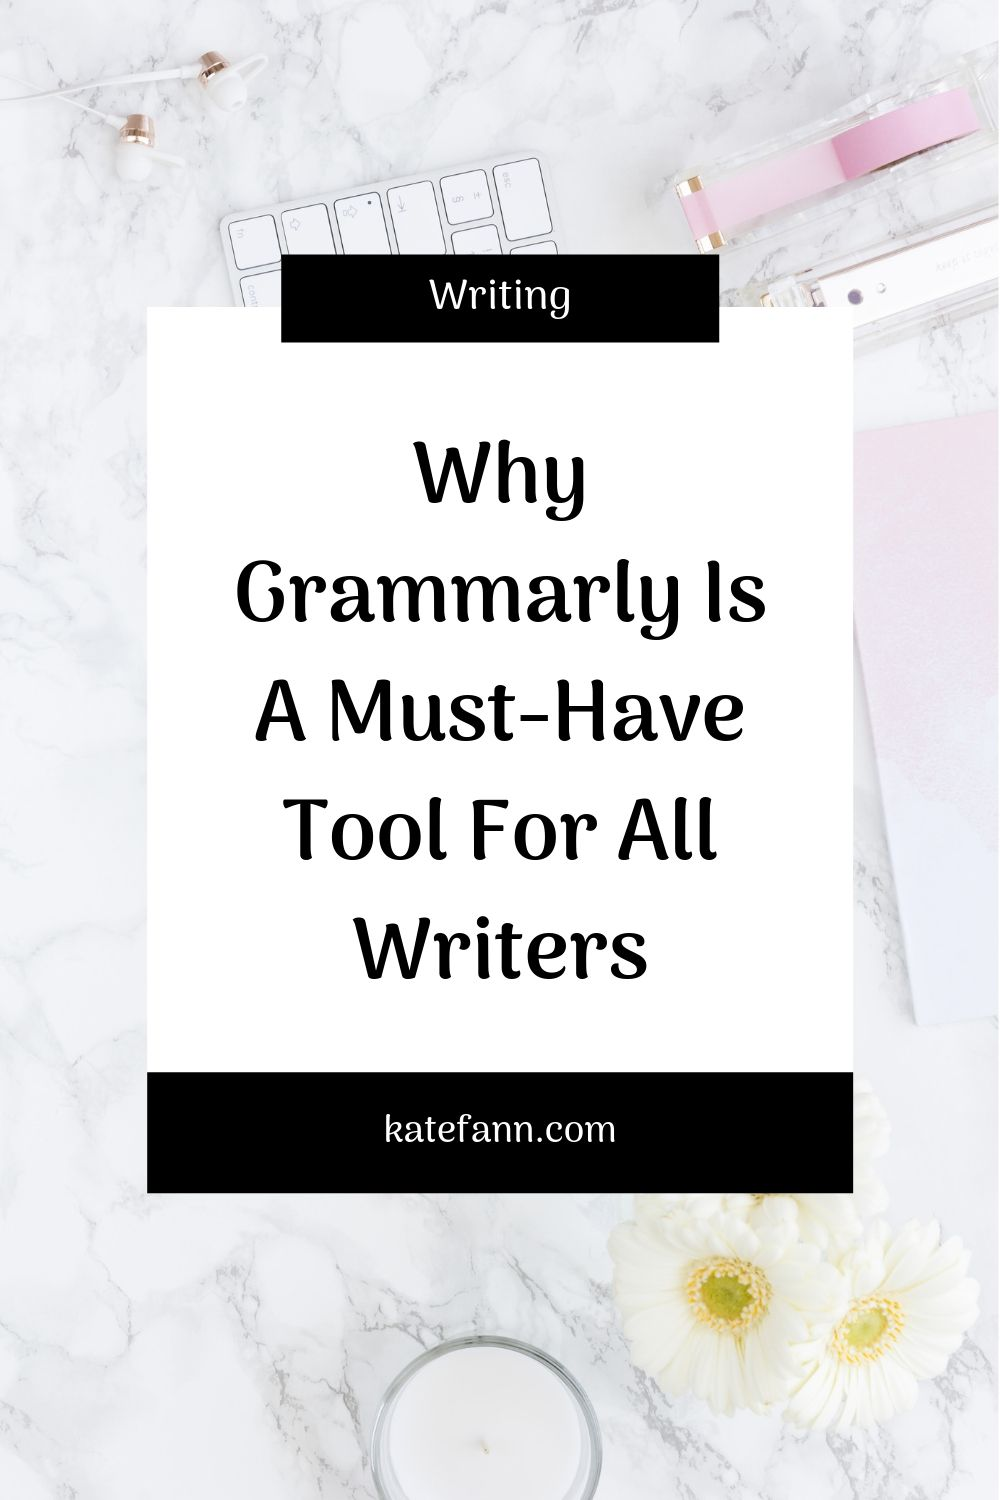 Why Grammarly Is A Must-Have Tool For All Writers